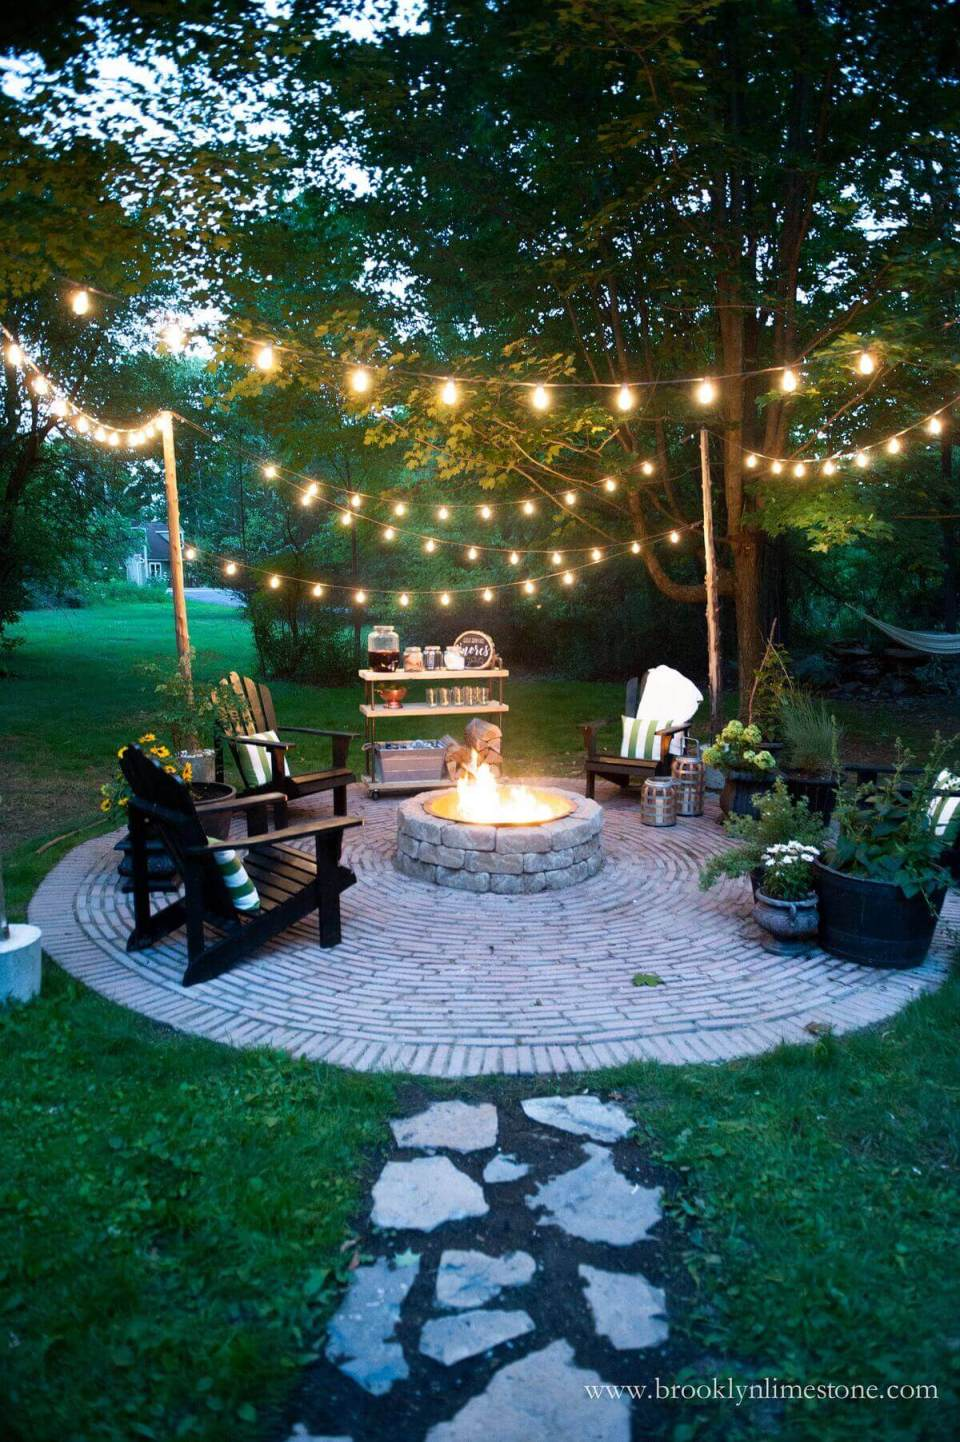 Round Firepit Area Idea for Nighttime | Awesome Firepit Area Ideas For Your Outdoor Activities